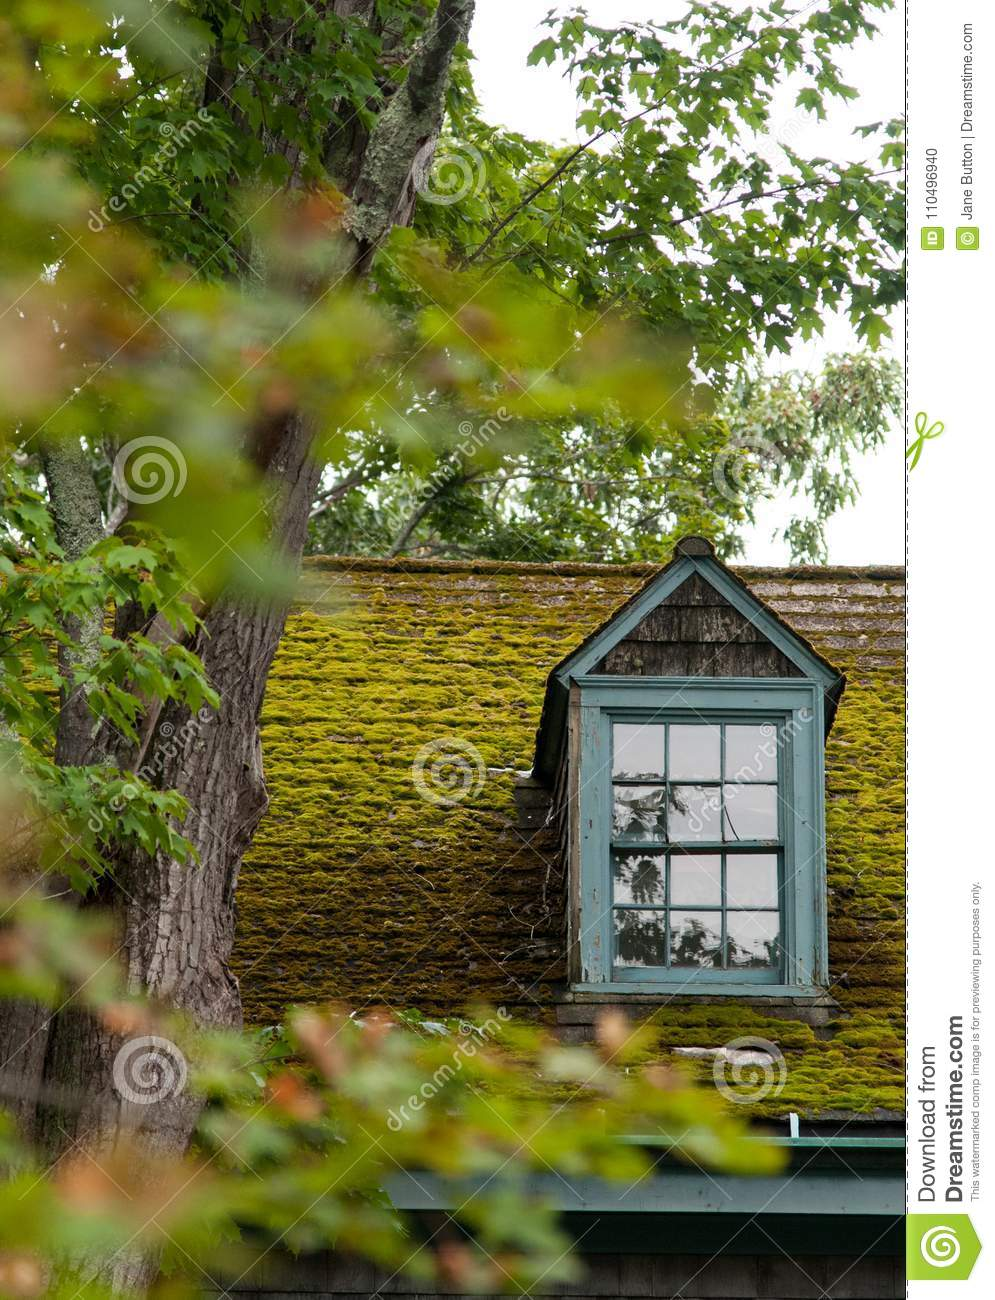 Dormer window and moss covered roof of an old shingle style cape cod house